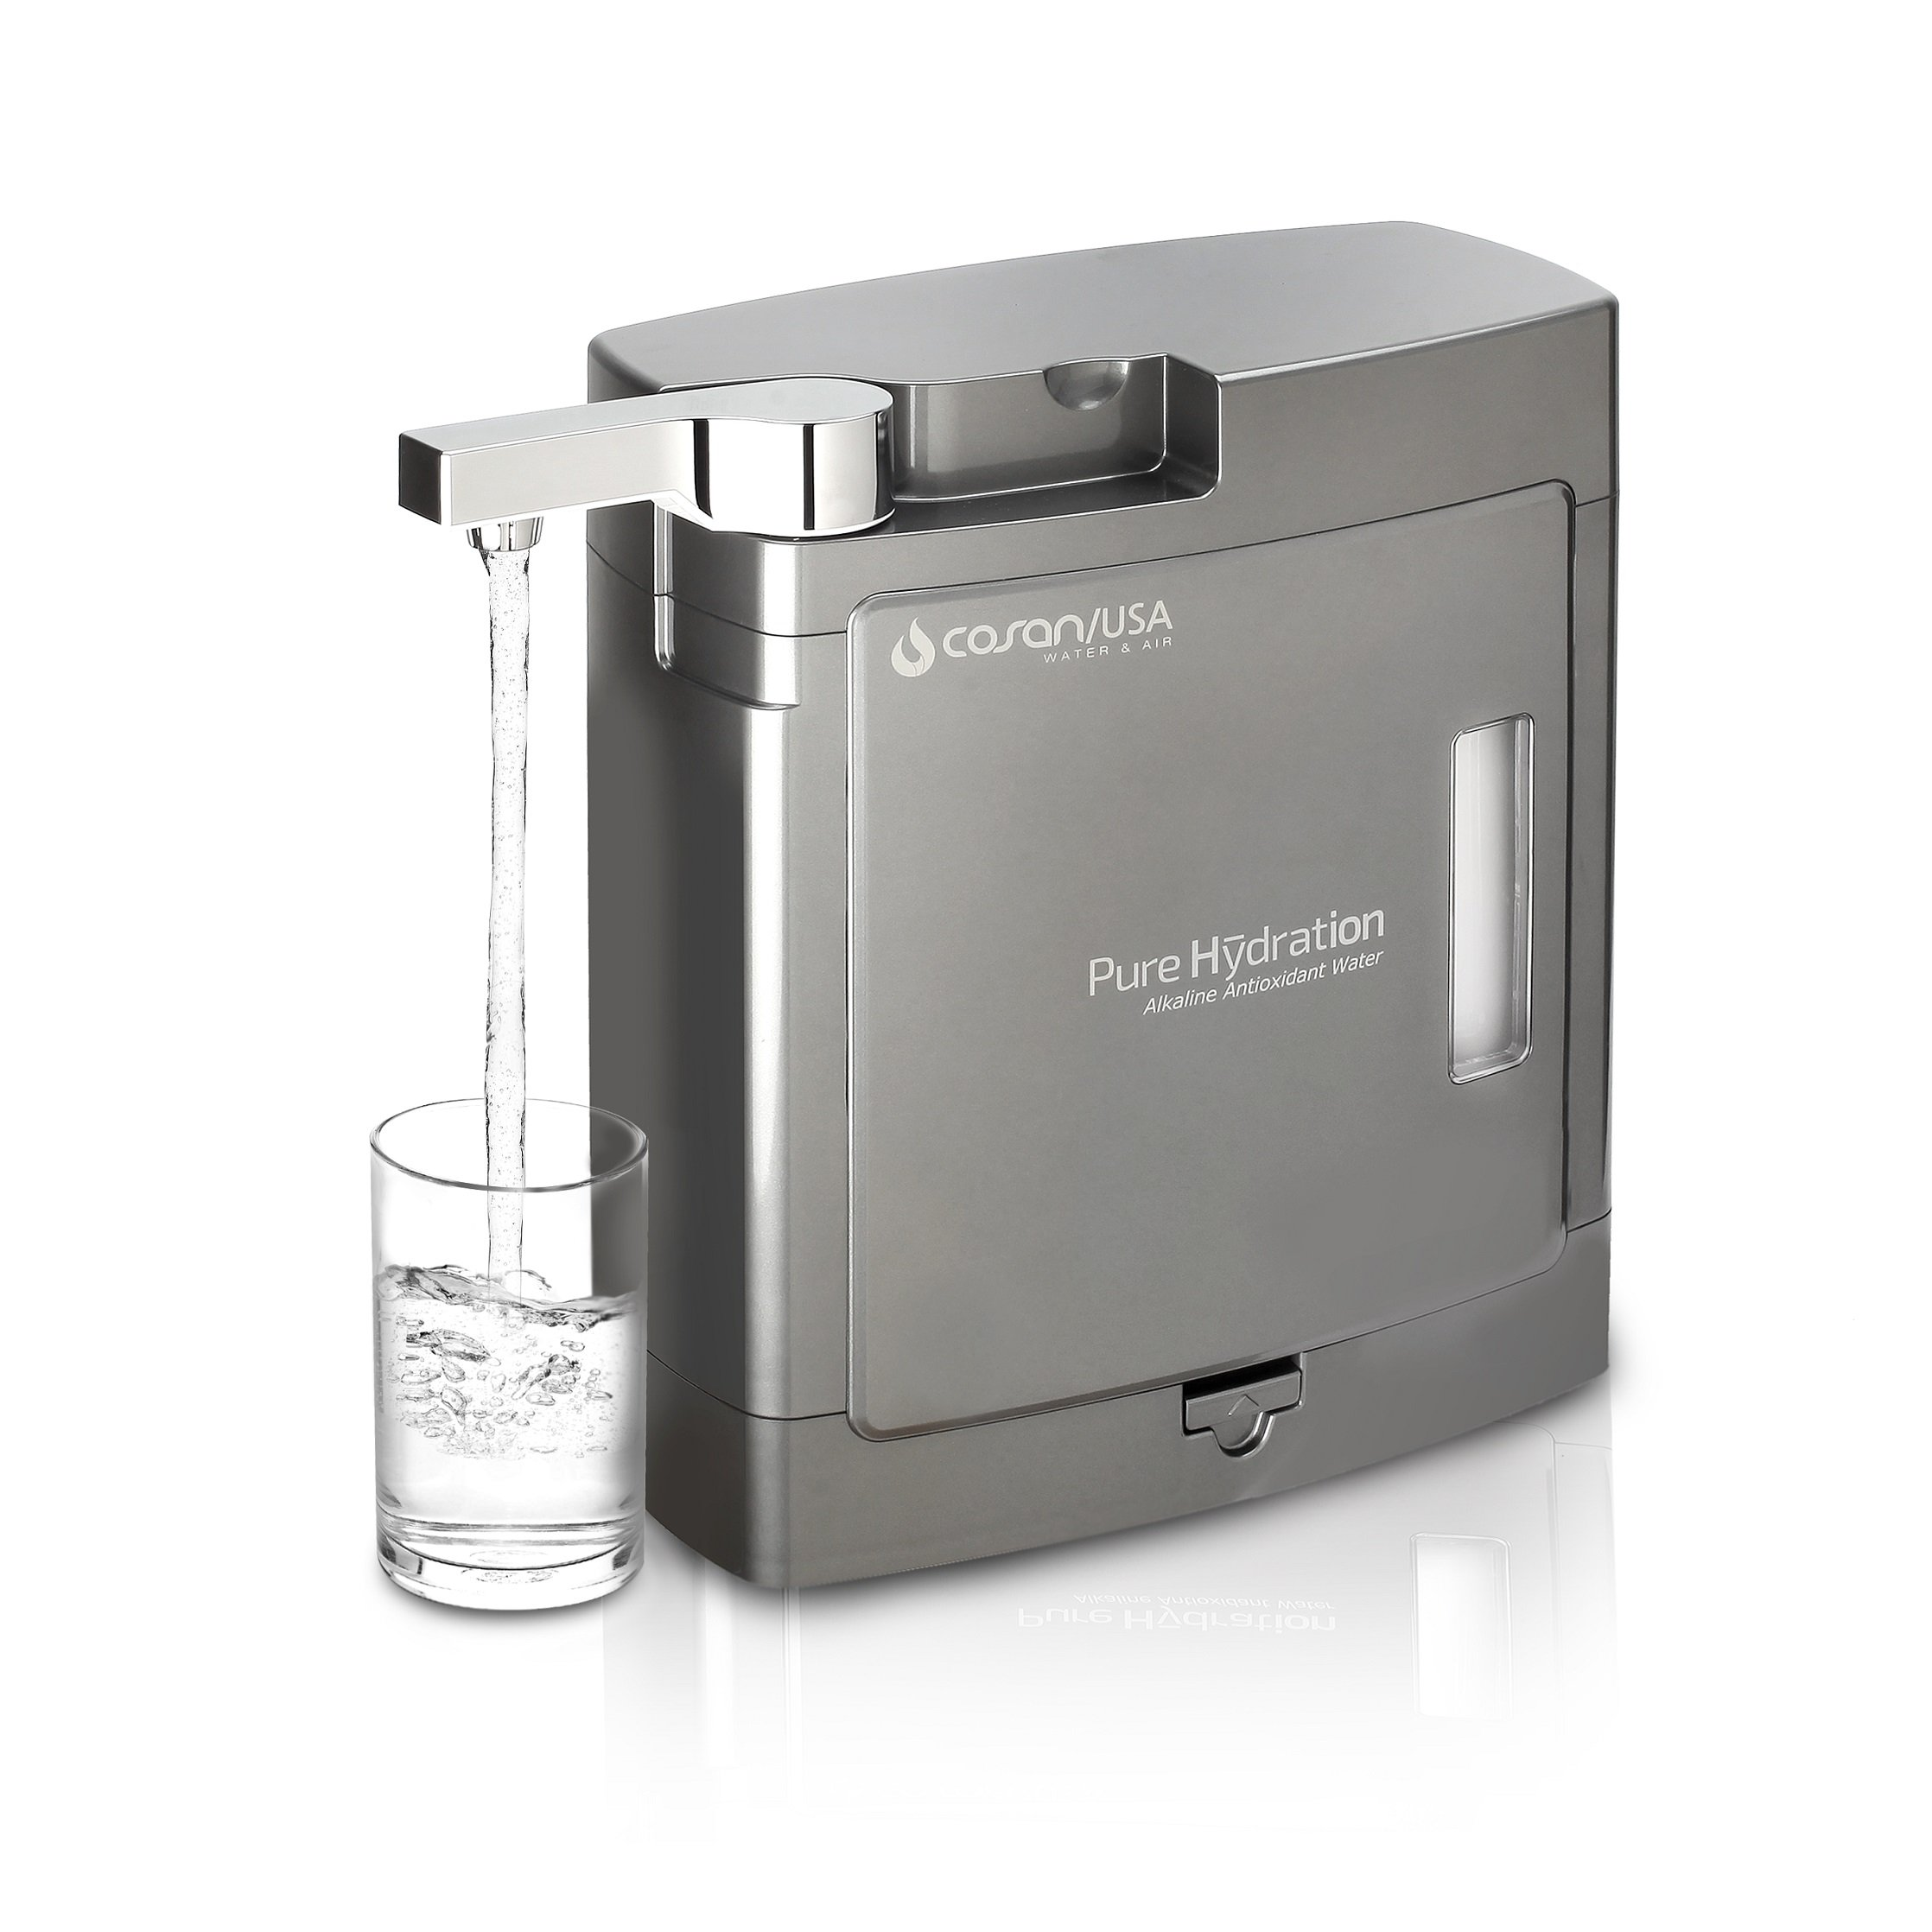 Pure Hydration Alkaline Antioxidant Water Ionizer (The fastest growing water ionizer, over 120,000 sold worldwide)